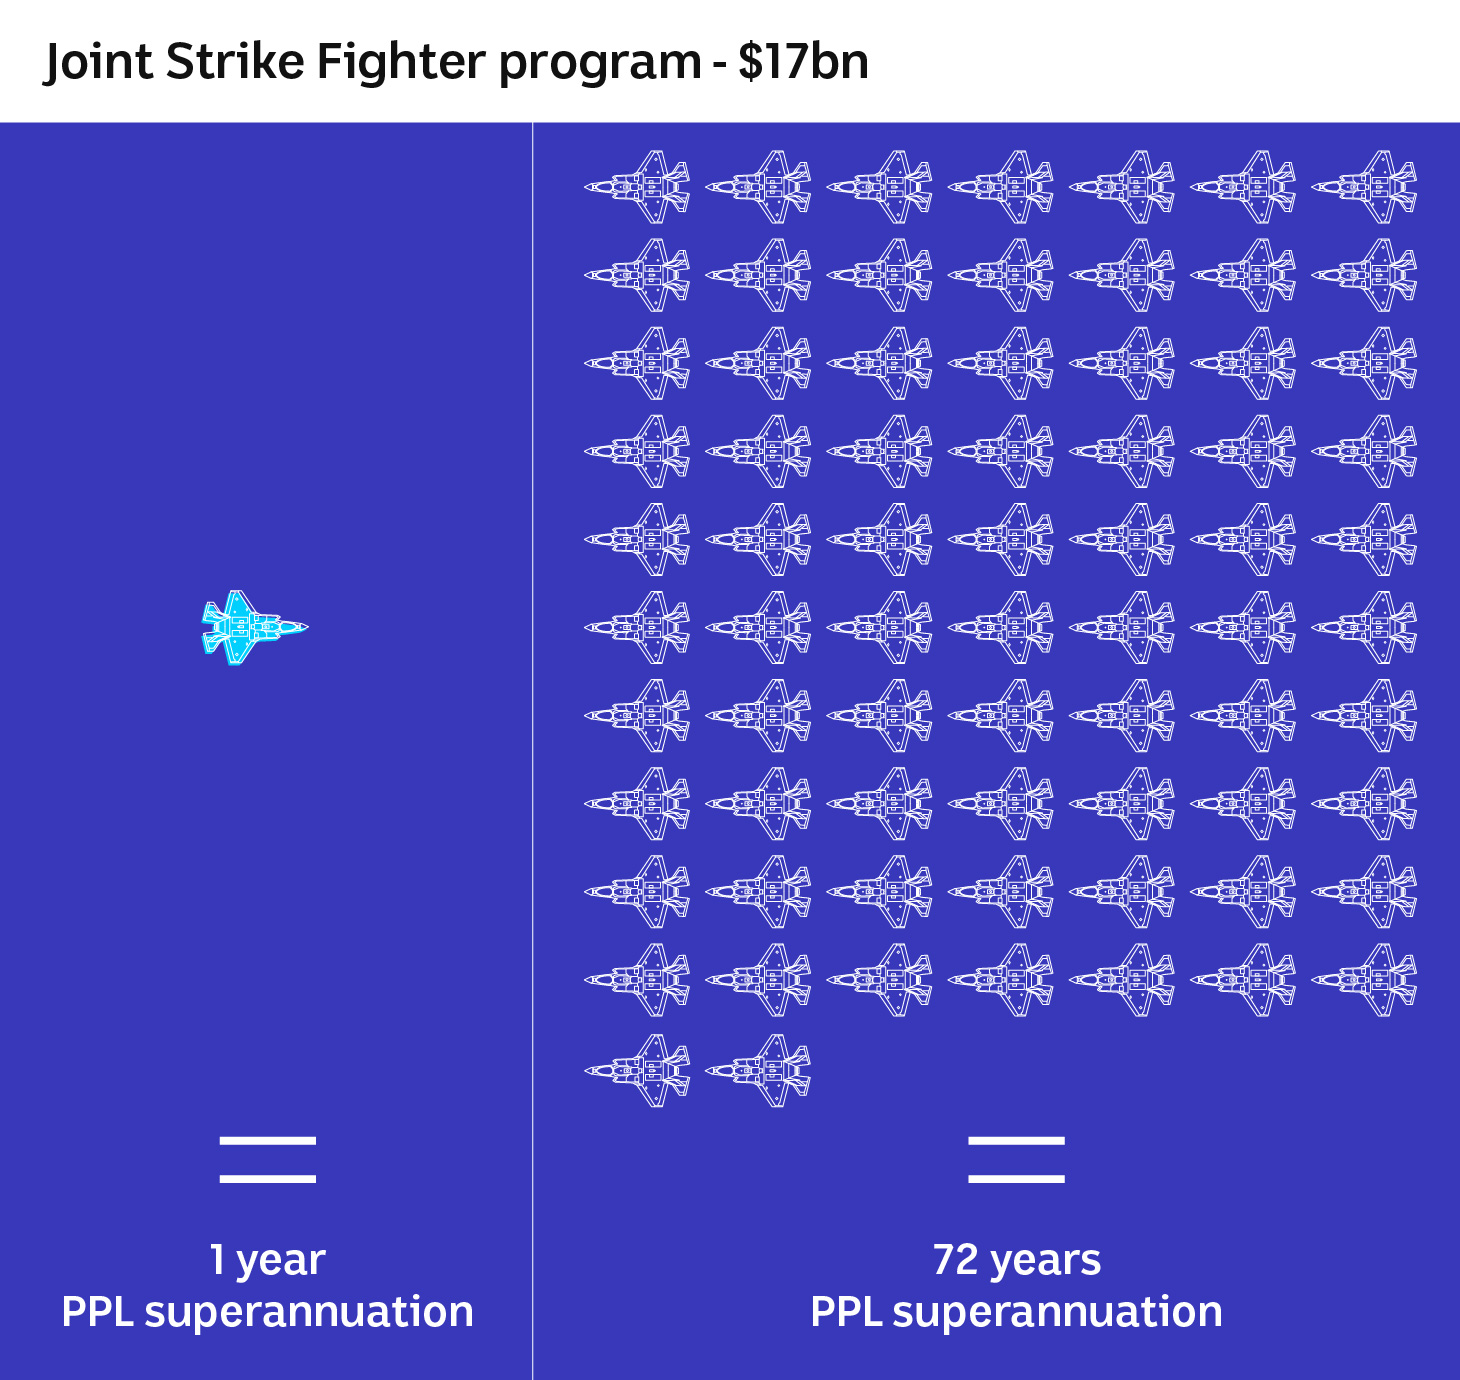 An illustration of one jet on the left and 72 on the right showing how much superannuation one plane will buy.